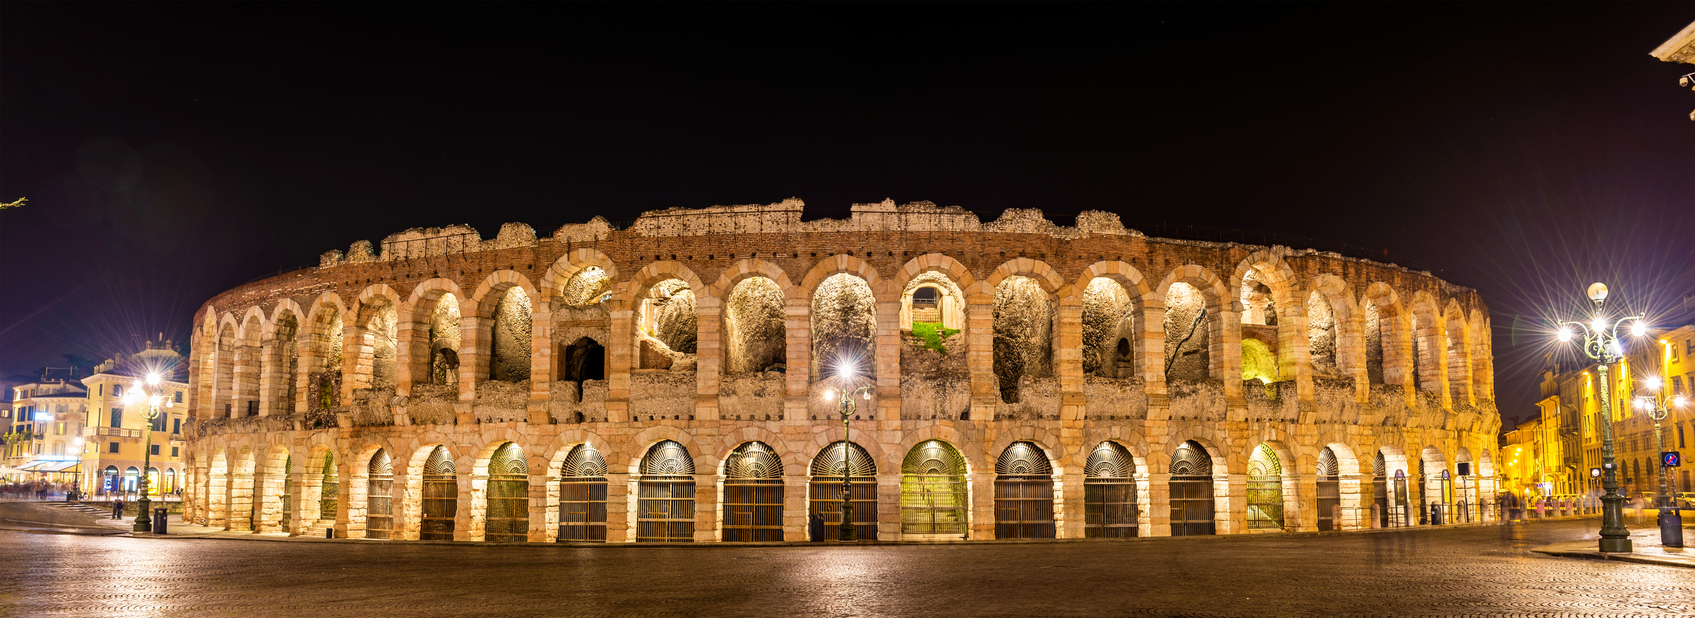 The Arena di Verona at night - Italy